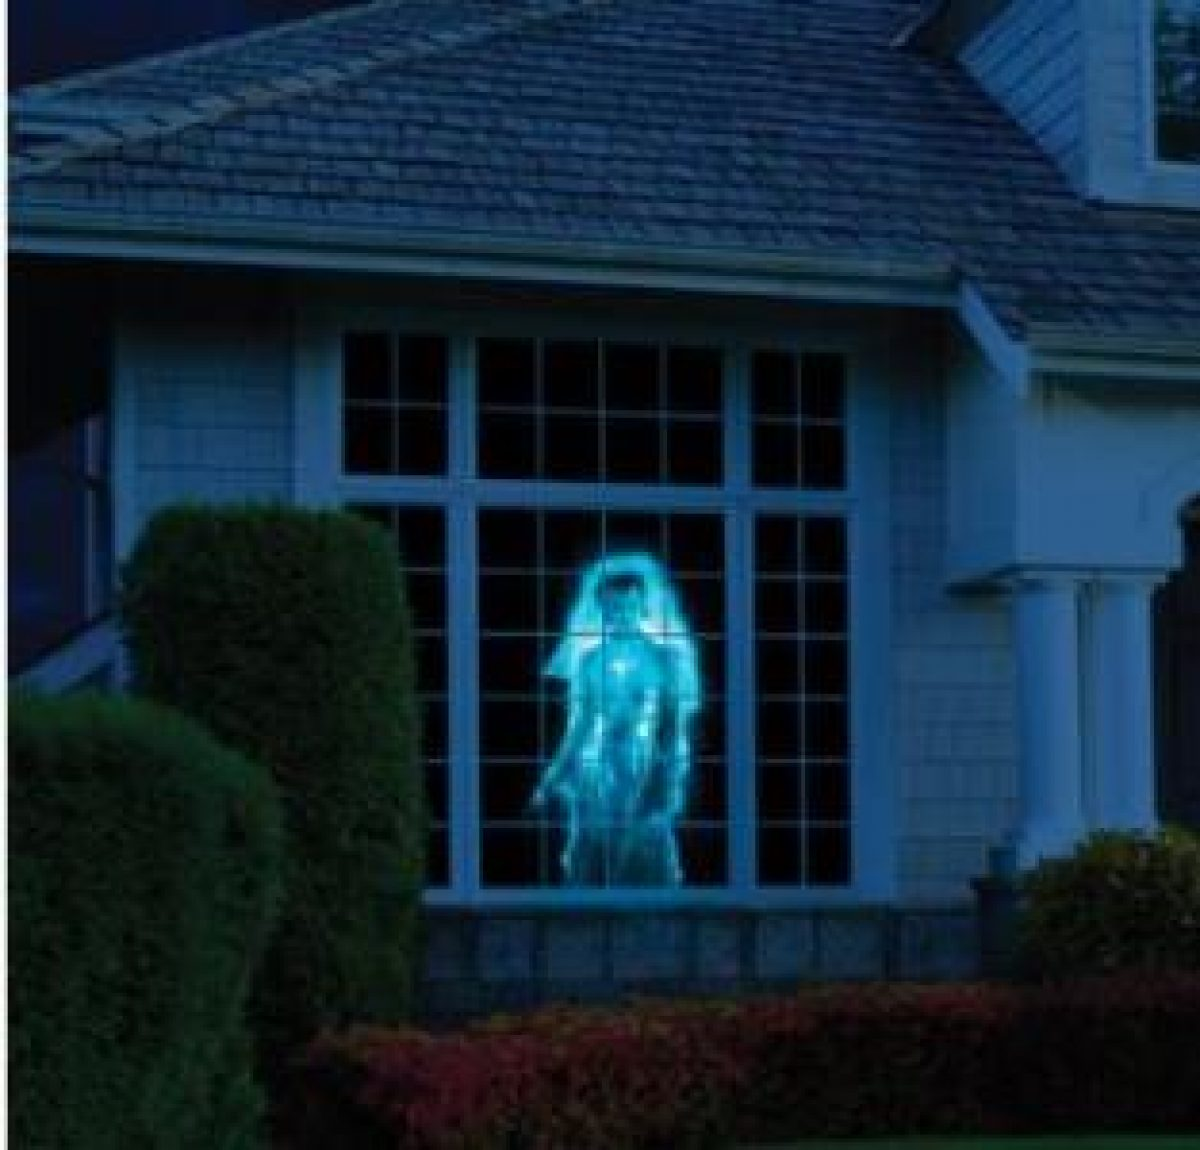 20 Amazing Halloween Decorations Props and Gad s